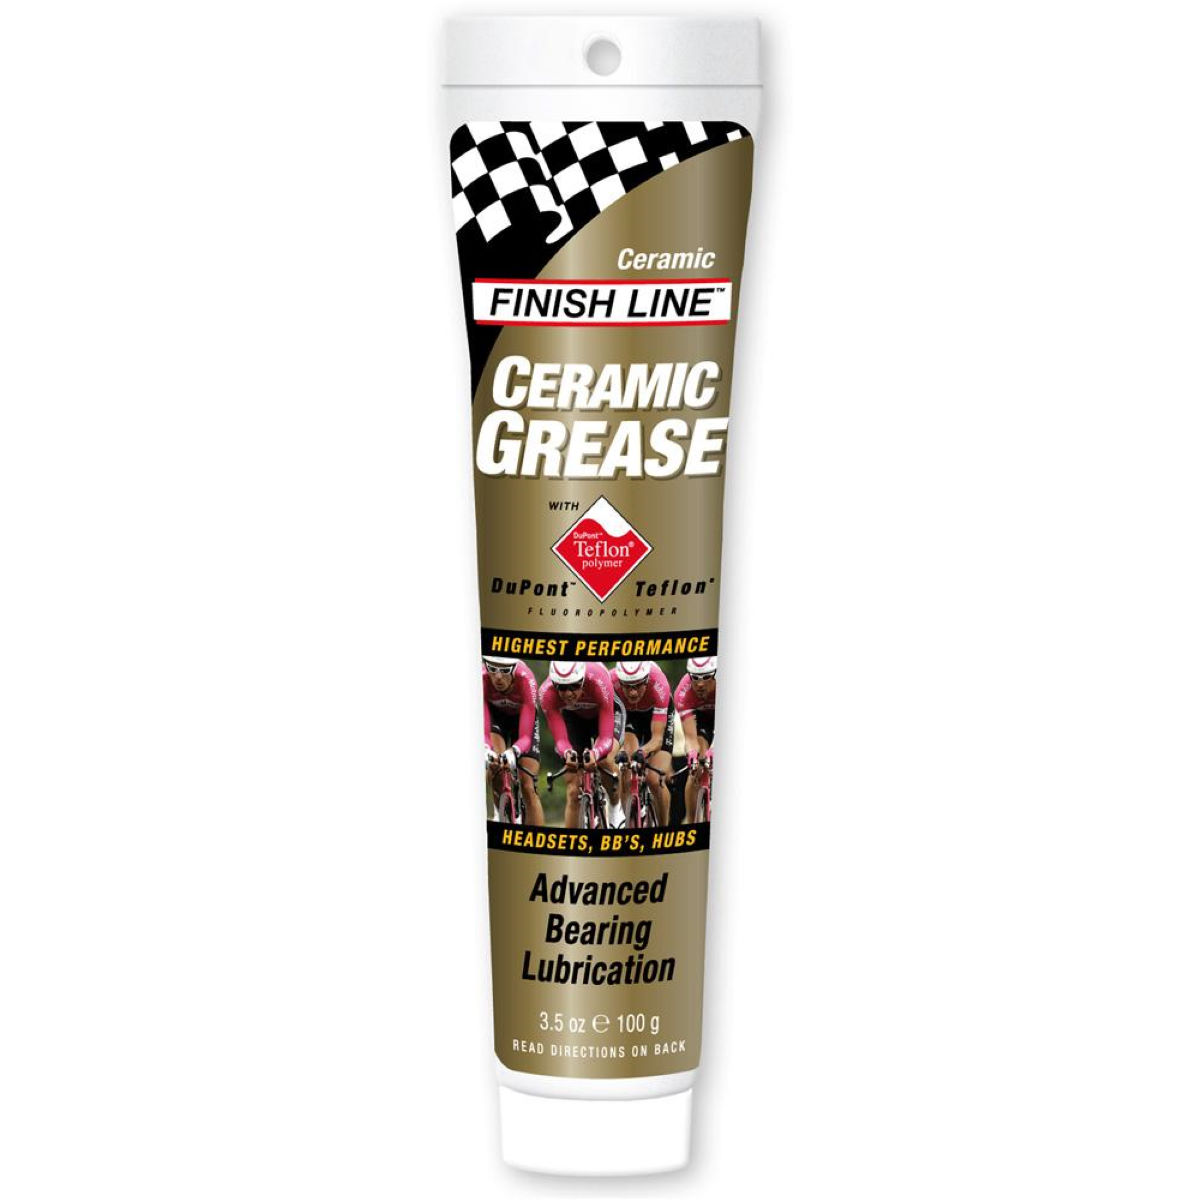 Tube de graisse céramique Finish Line 60 g - 60g Graisse